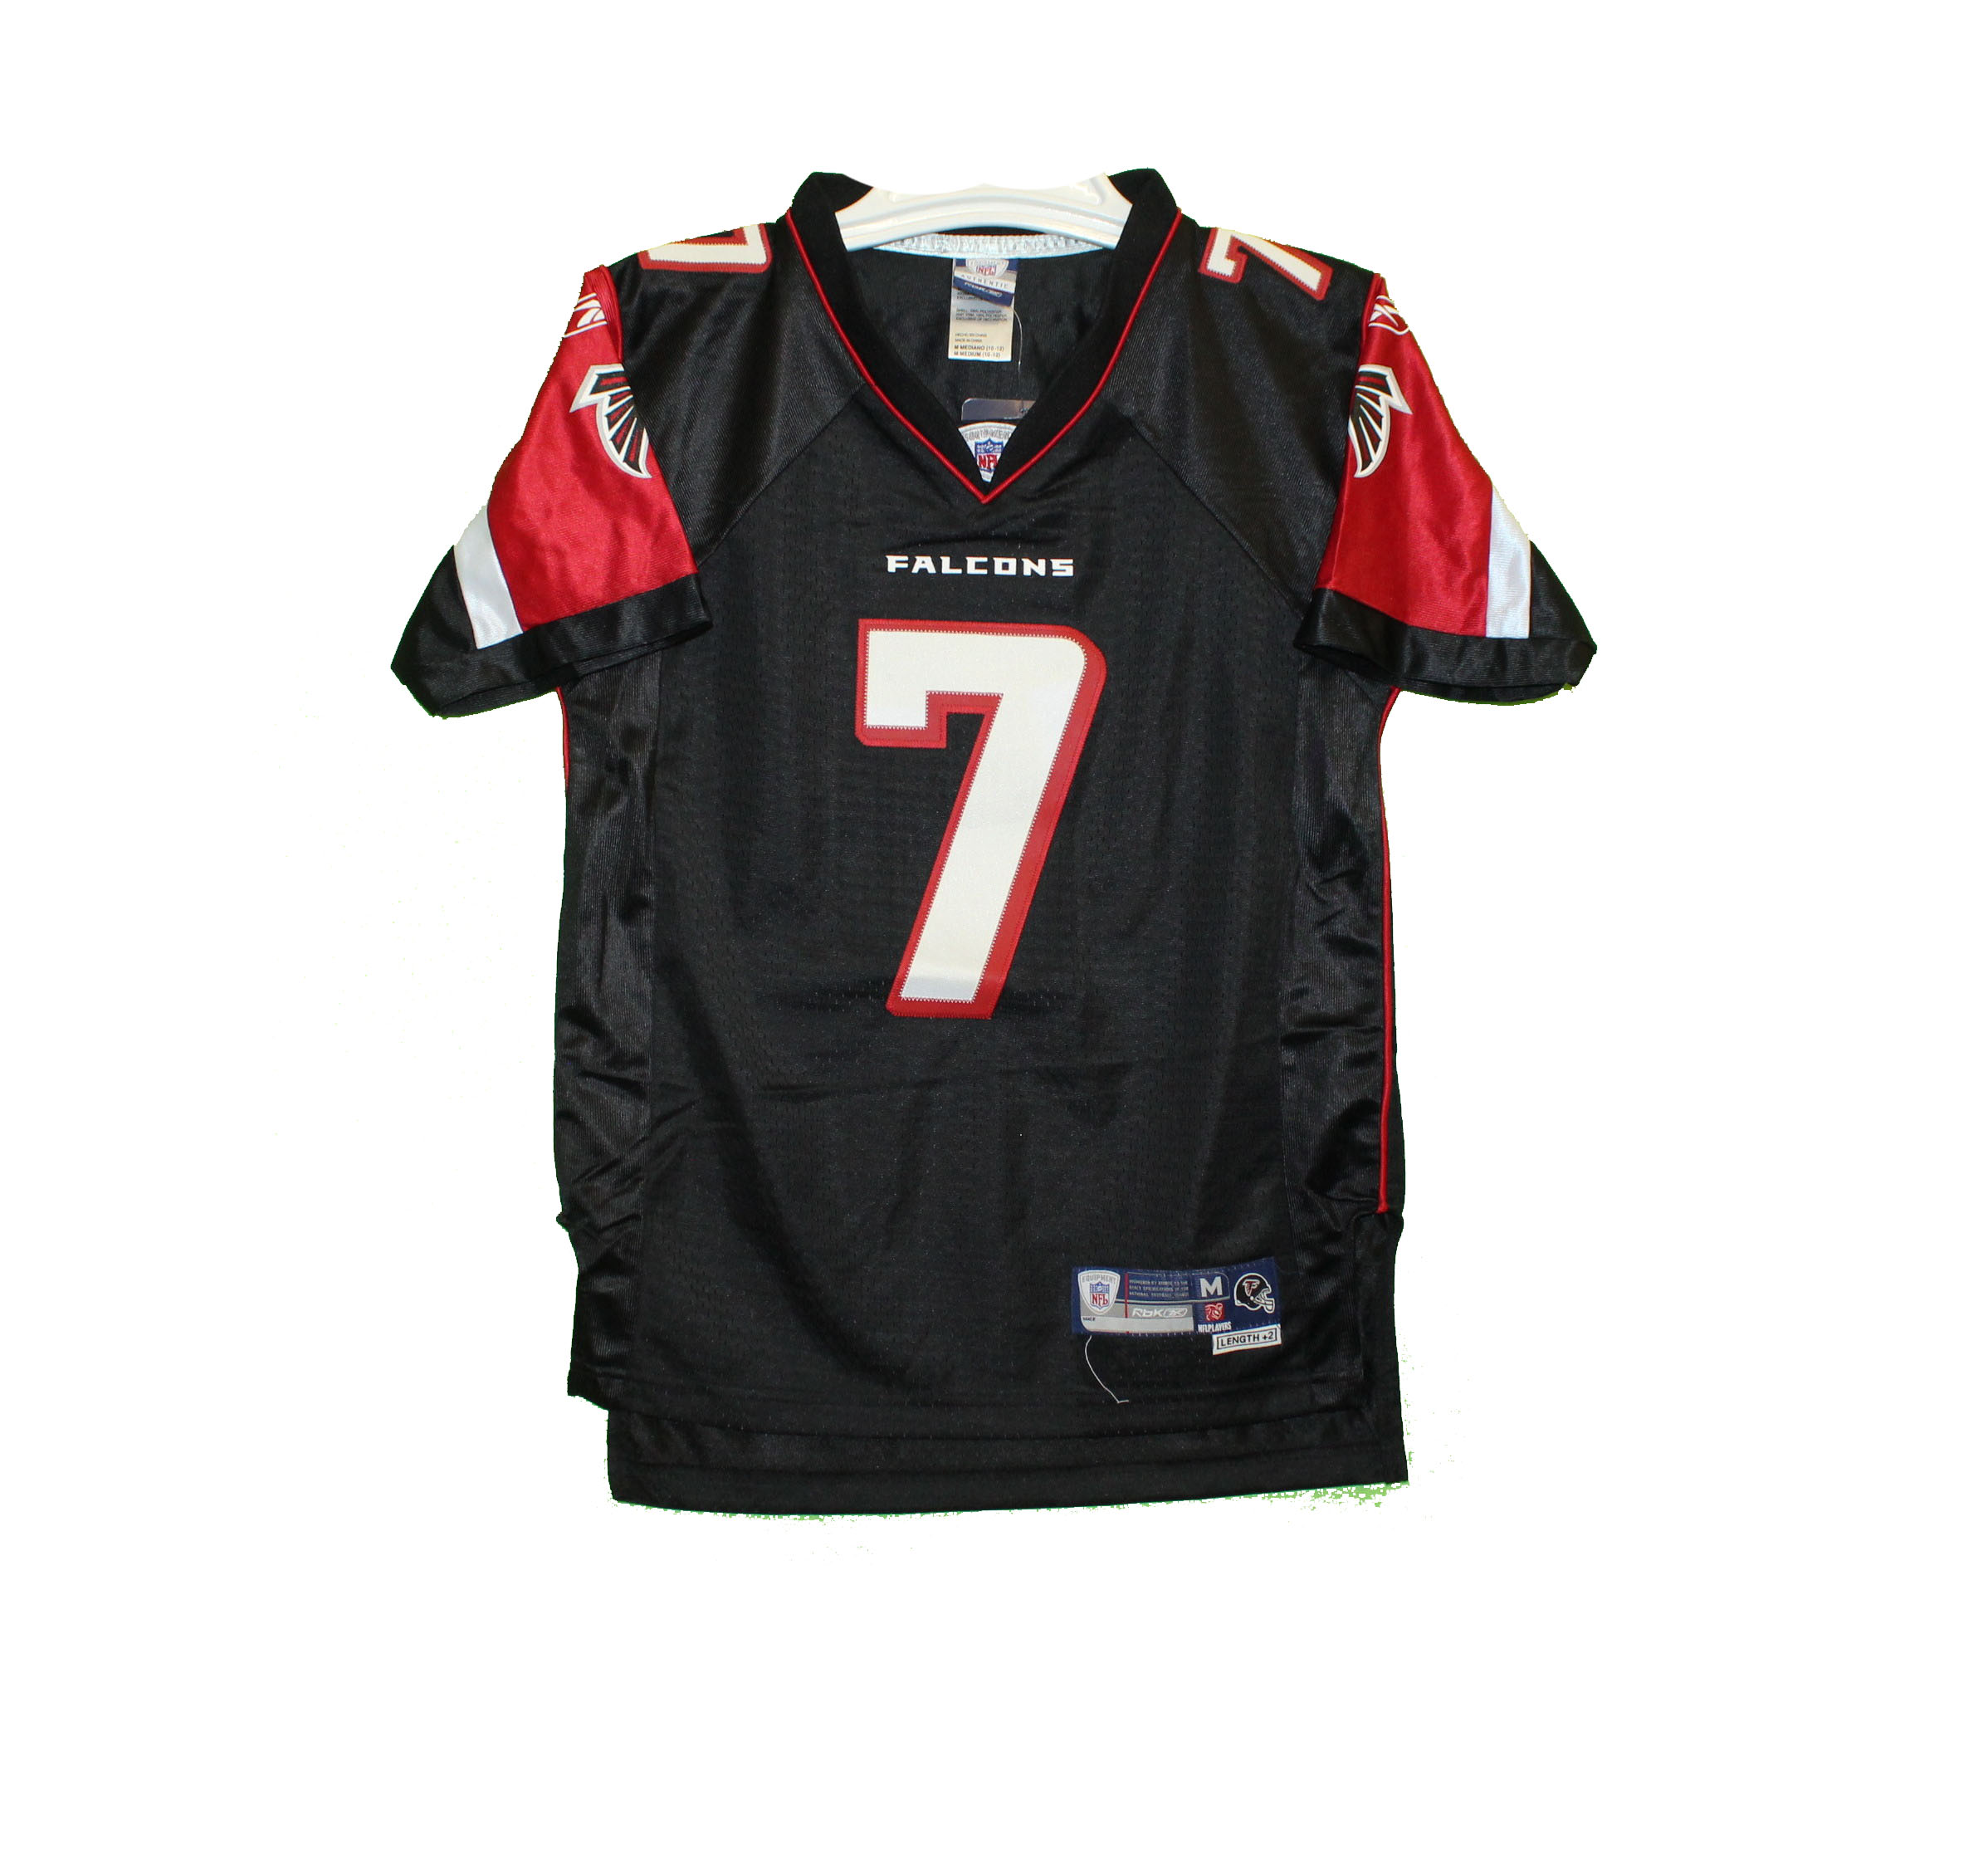 new arrival 955c0 5679f Atlanta Falcons - YOUTH Vintage Embroidered Black Michael Vick Throwback  Jersey